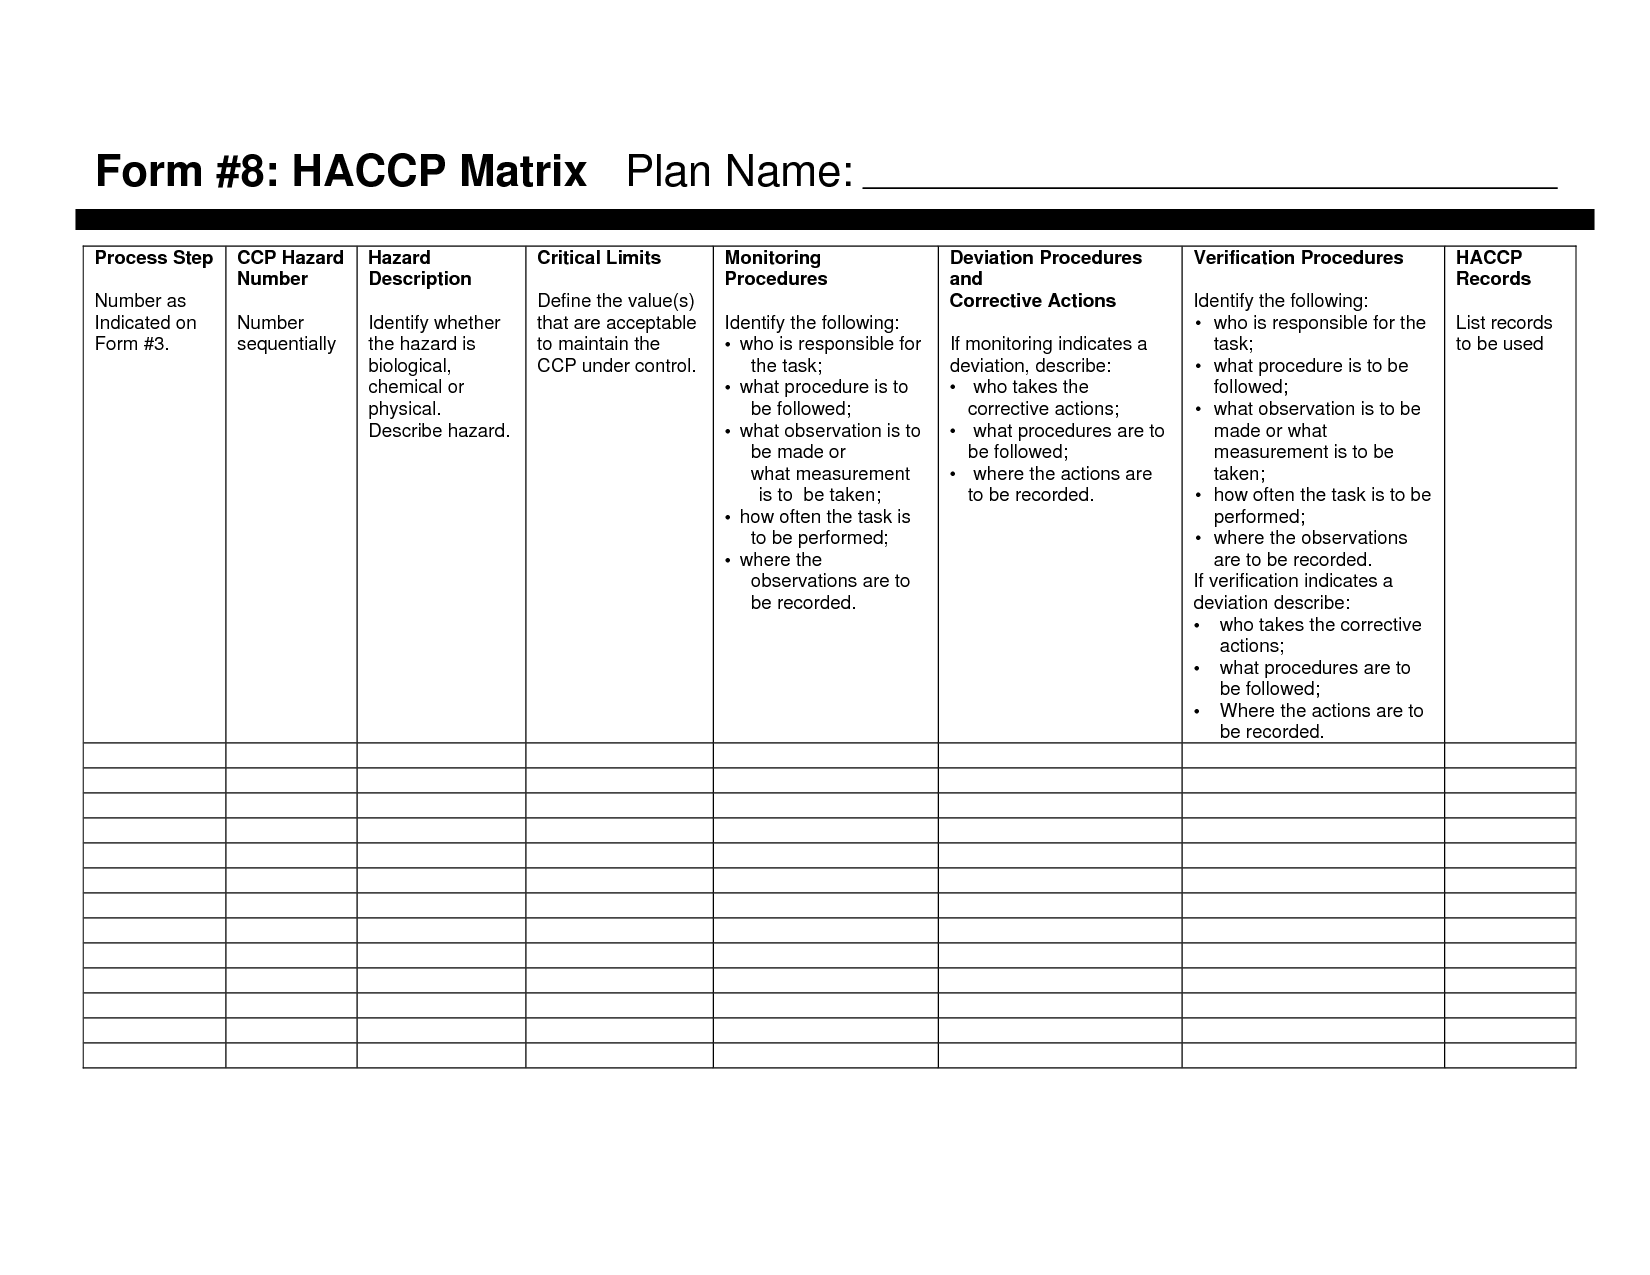 haccp plan template blank haccp plan forms download. Black Bedroom Furniture Sets. Home Design Ideas